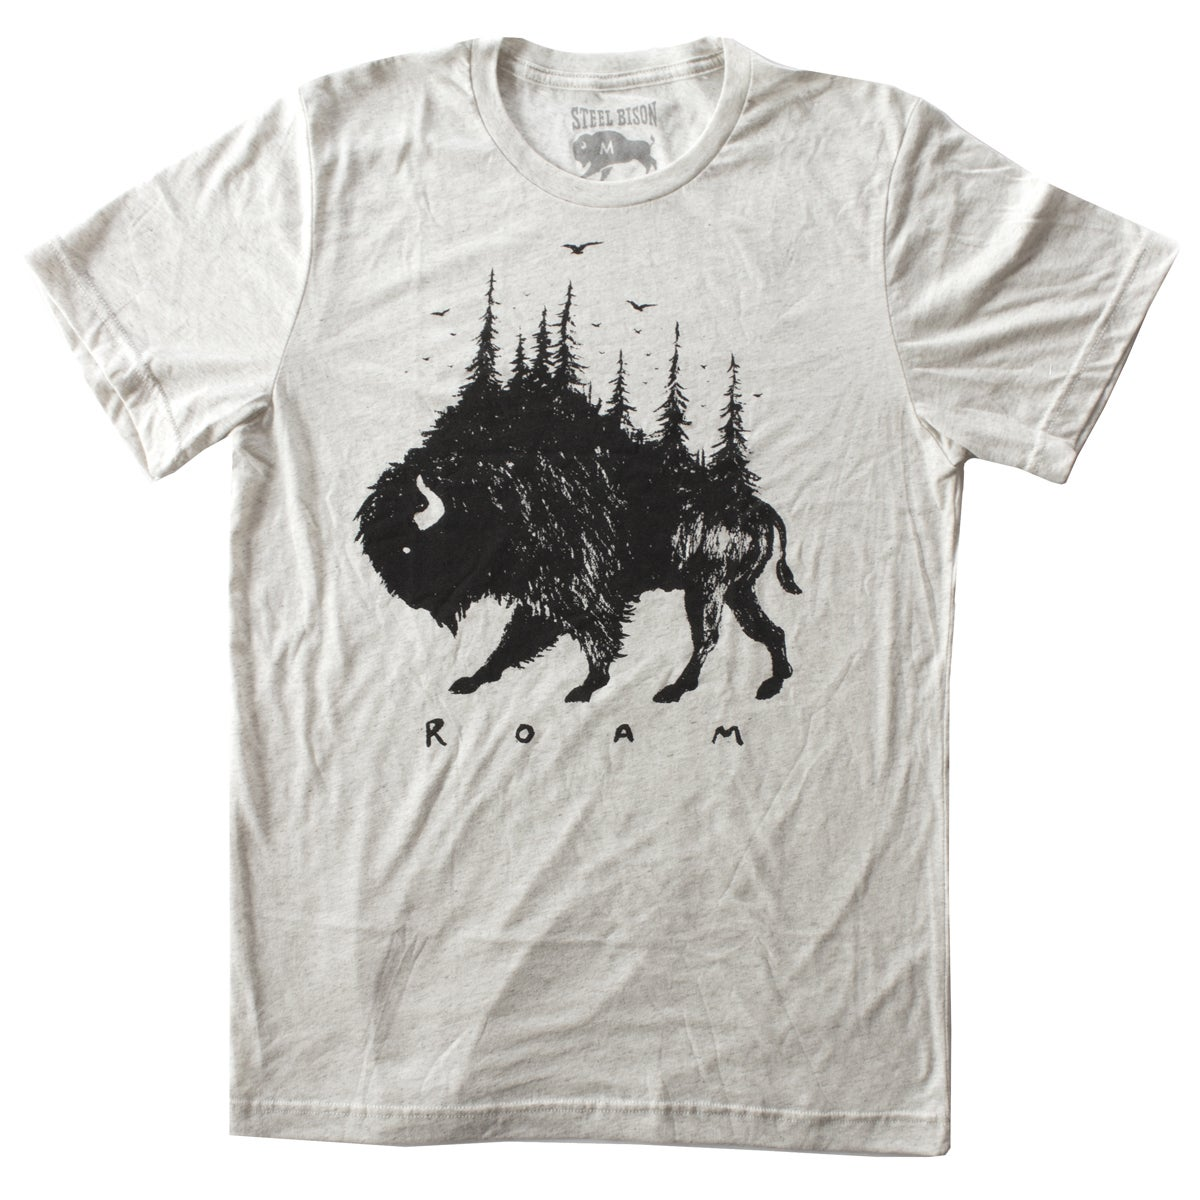 Image of T-SHIRT - BISON PINES (OATMEAL)